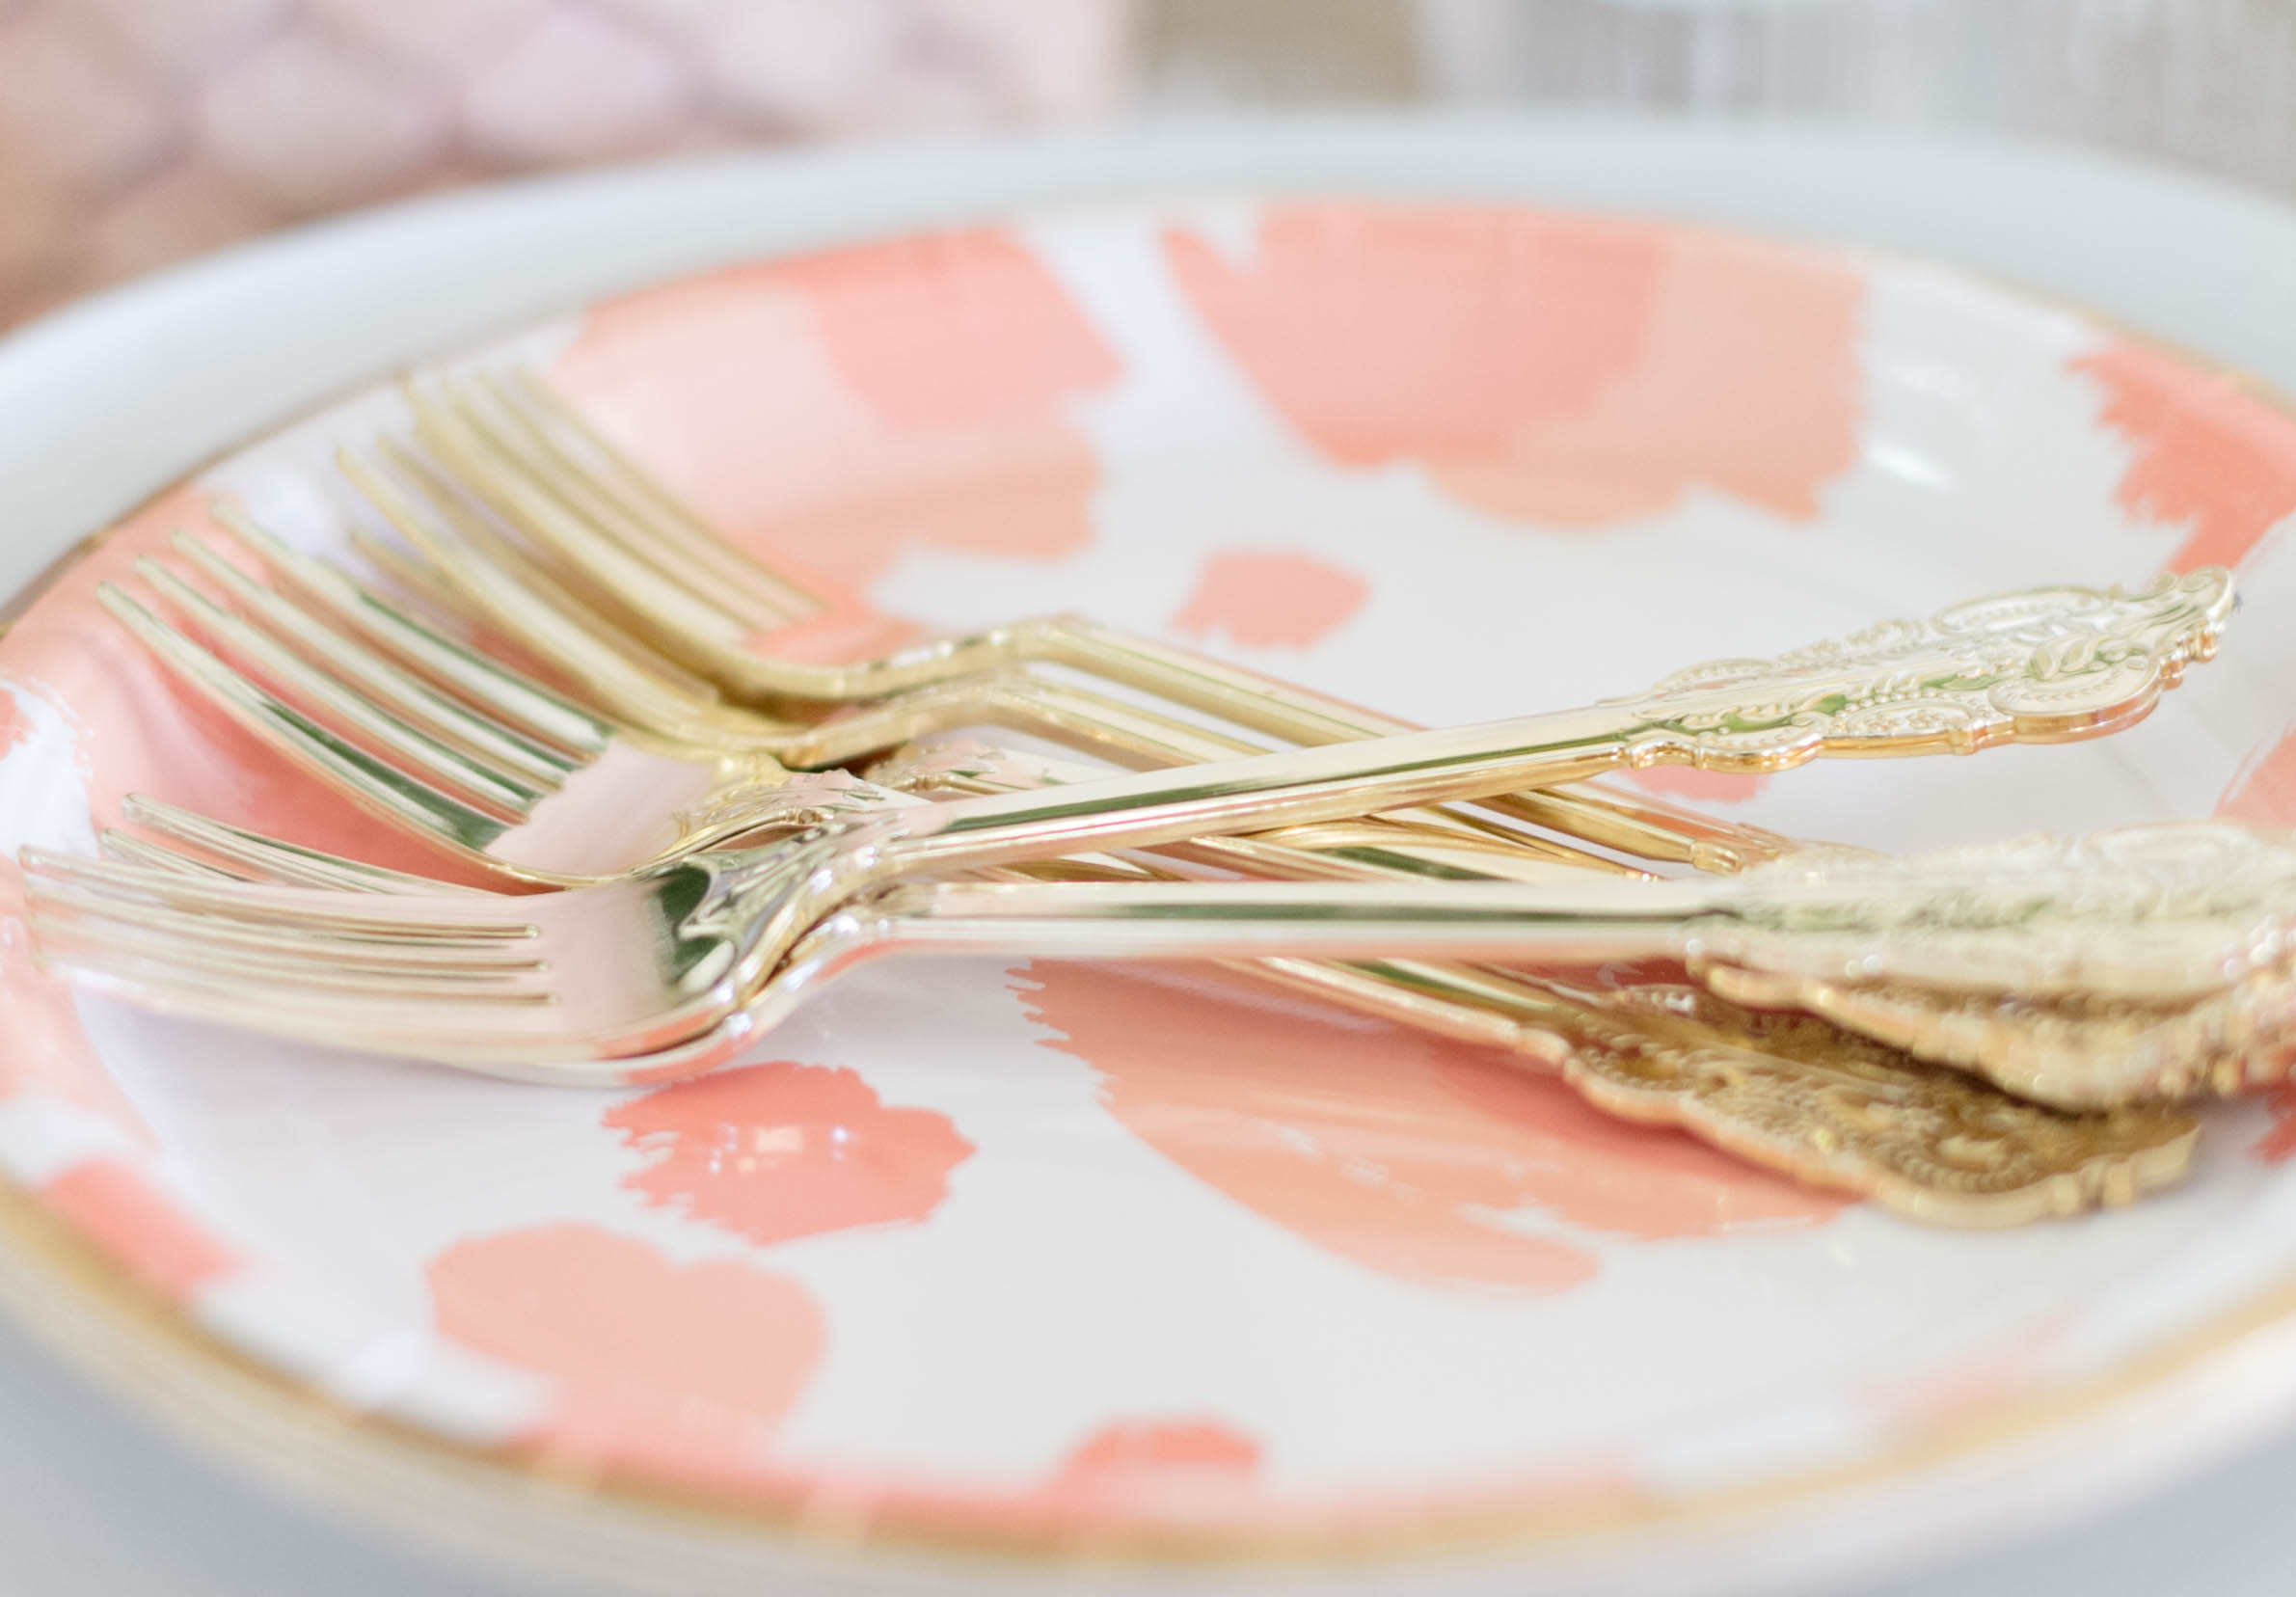 Entertaining: Valentine's Day Tablescape, Pink, White & Gold, Mixed Patterns (Budget Decorating) by Iris Nacole.